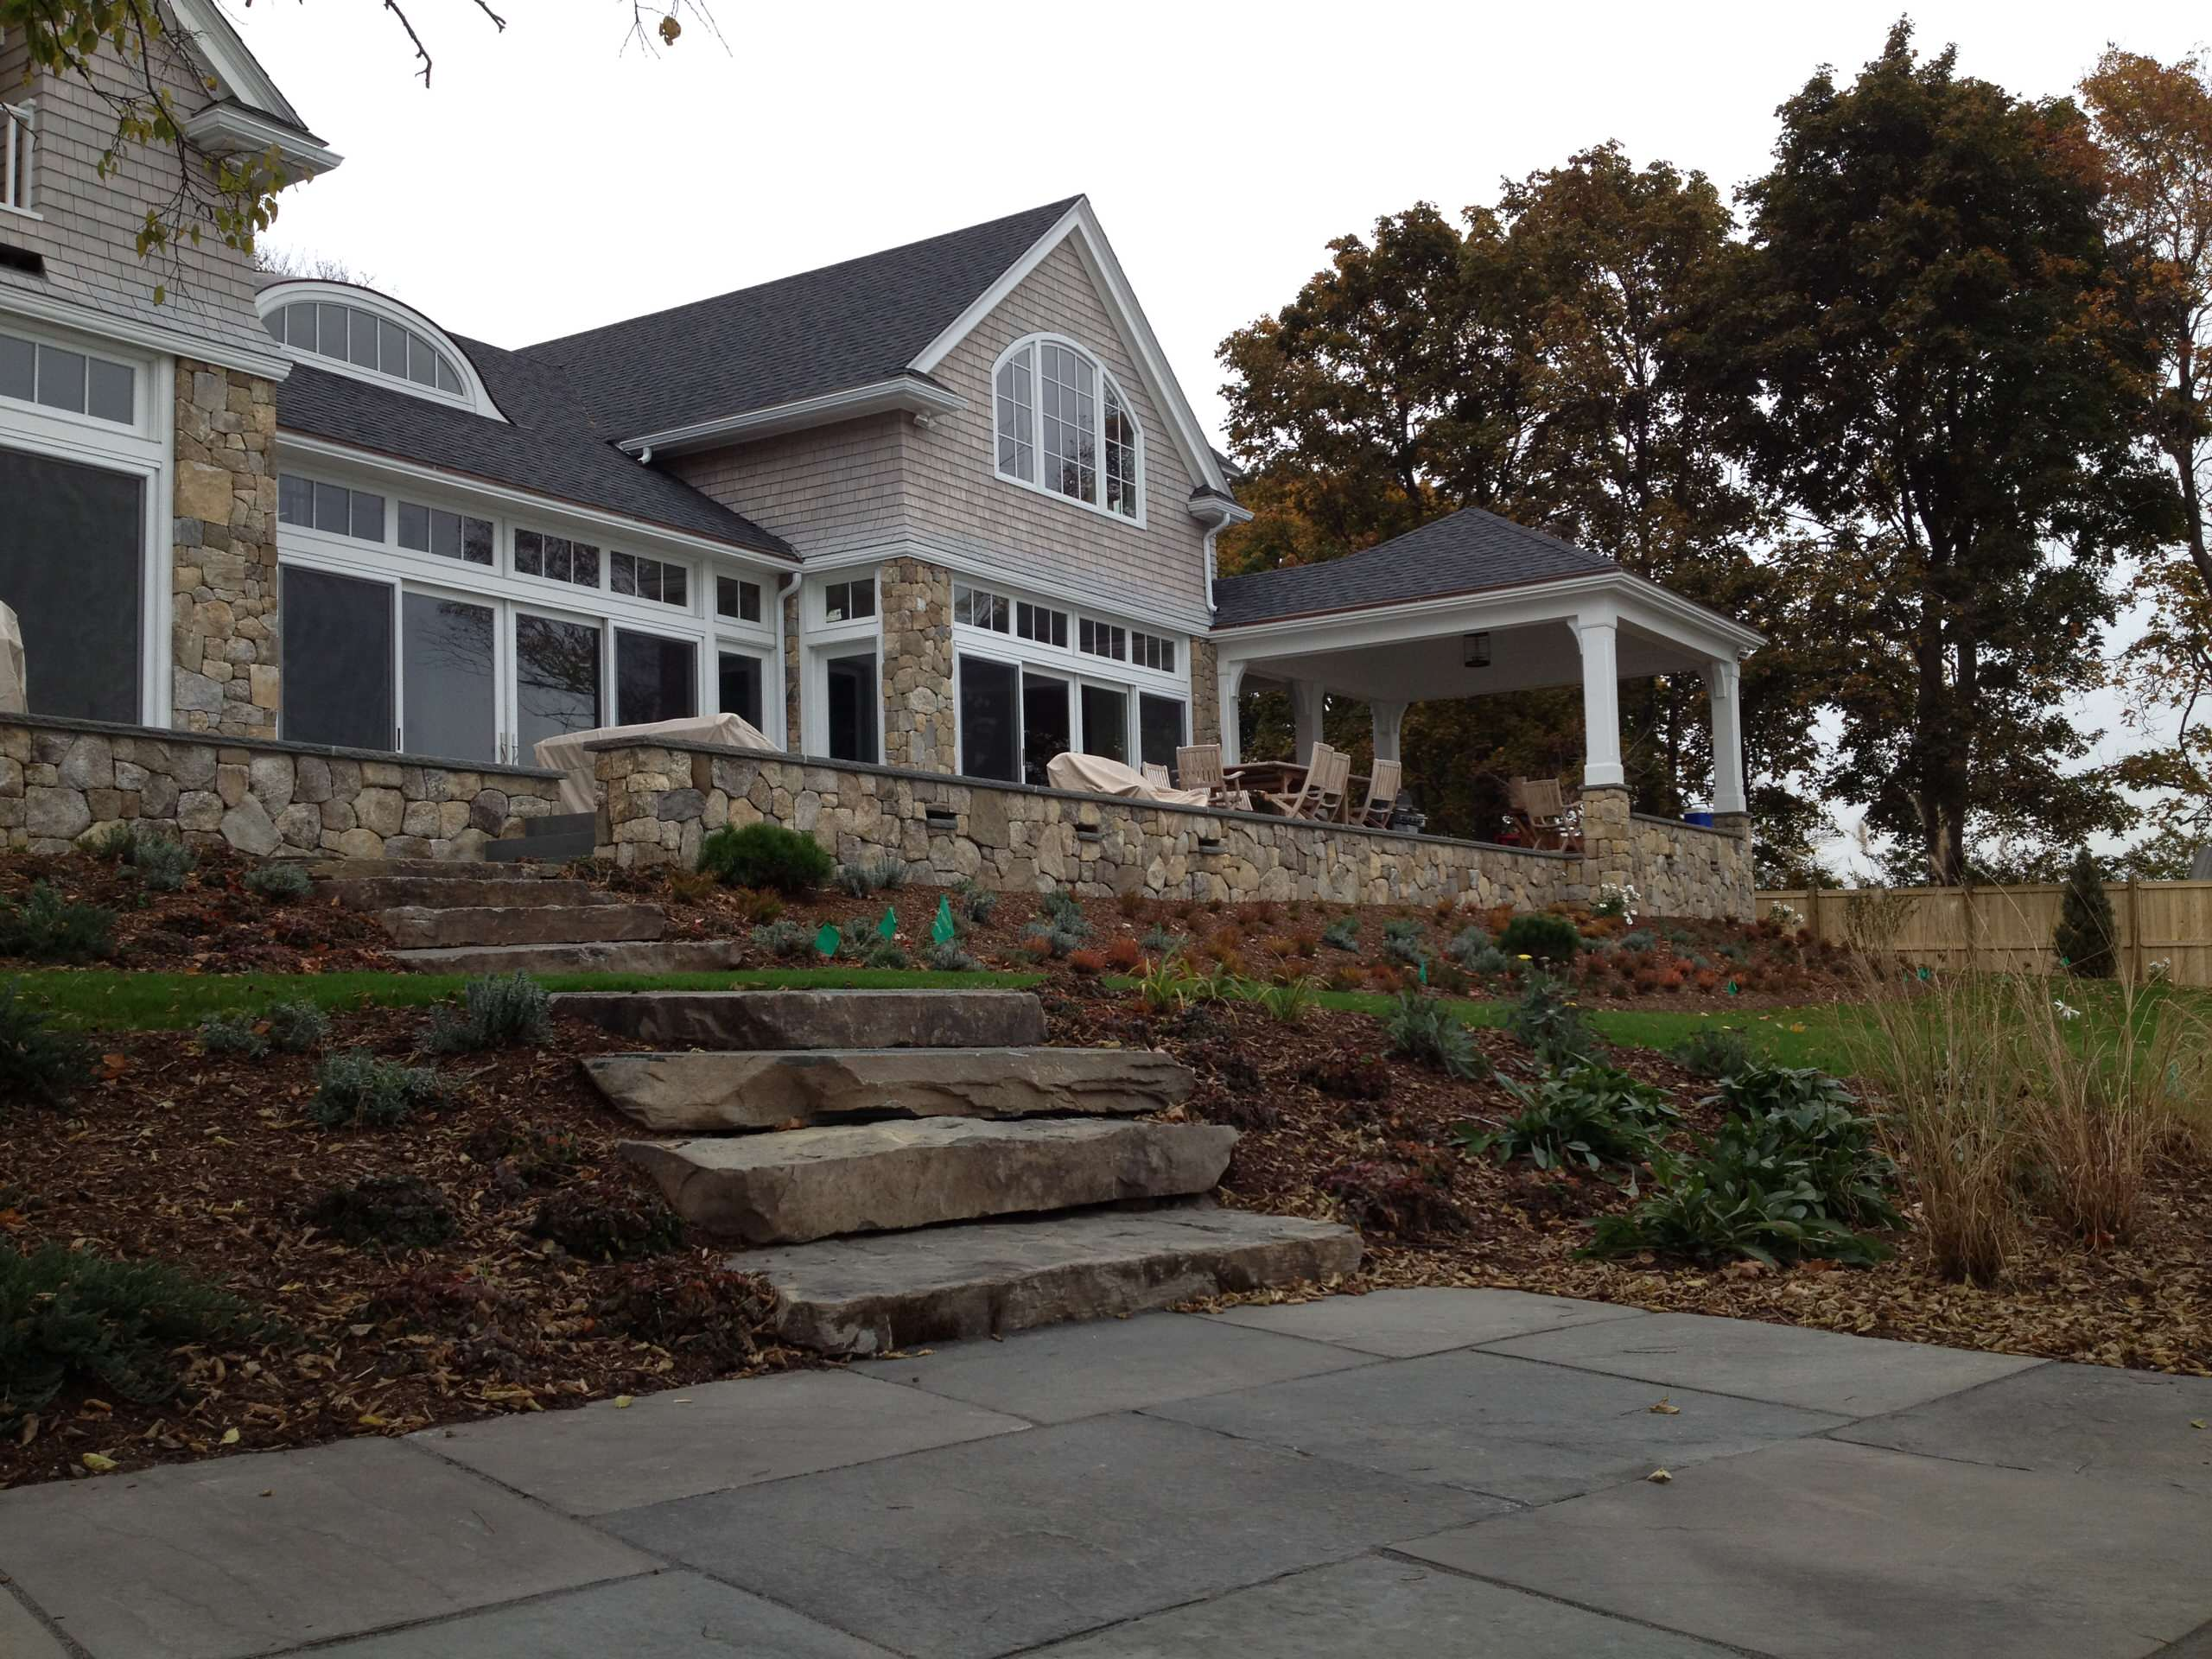 We added a small, shaded bluestone terrace adjacent to seawall.